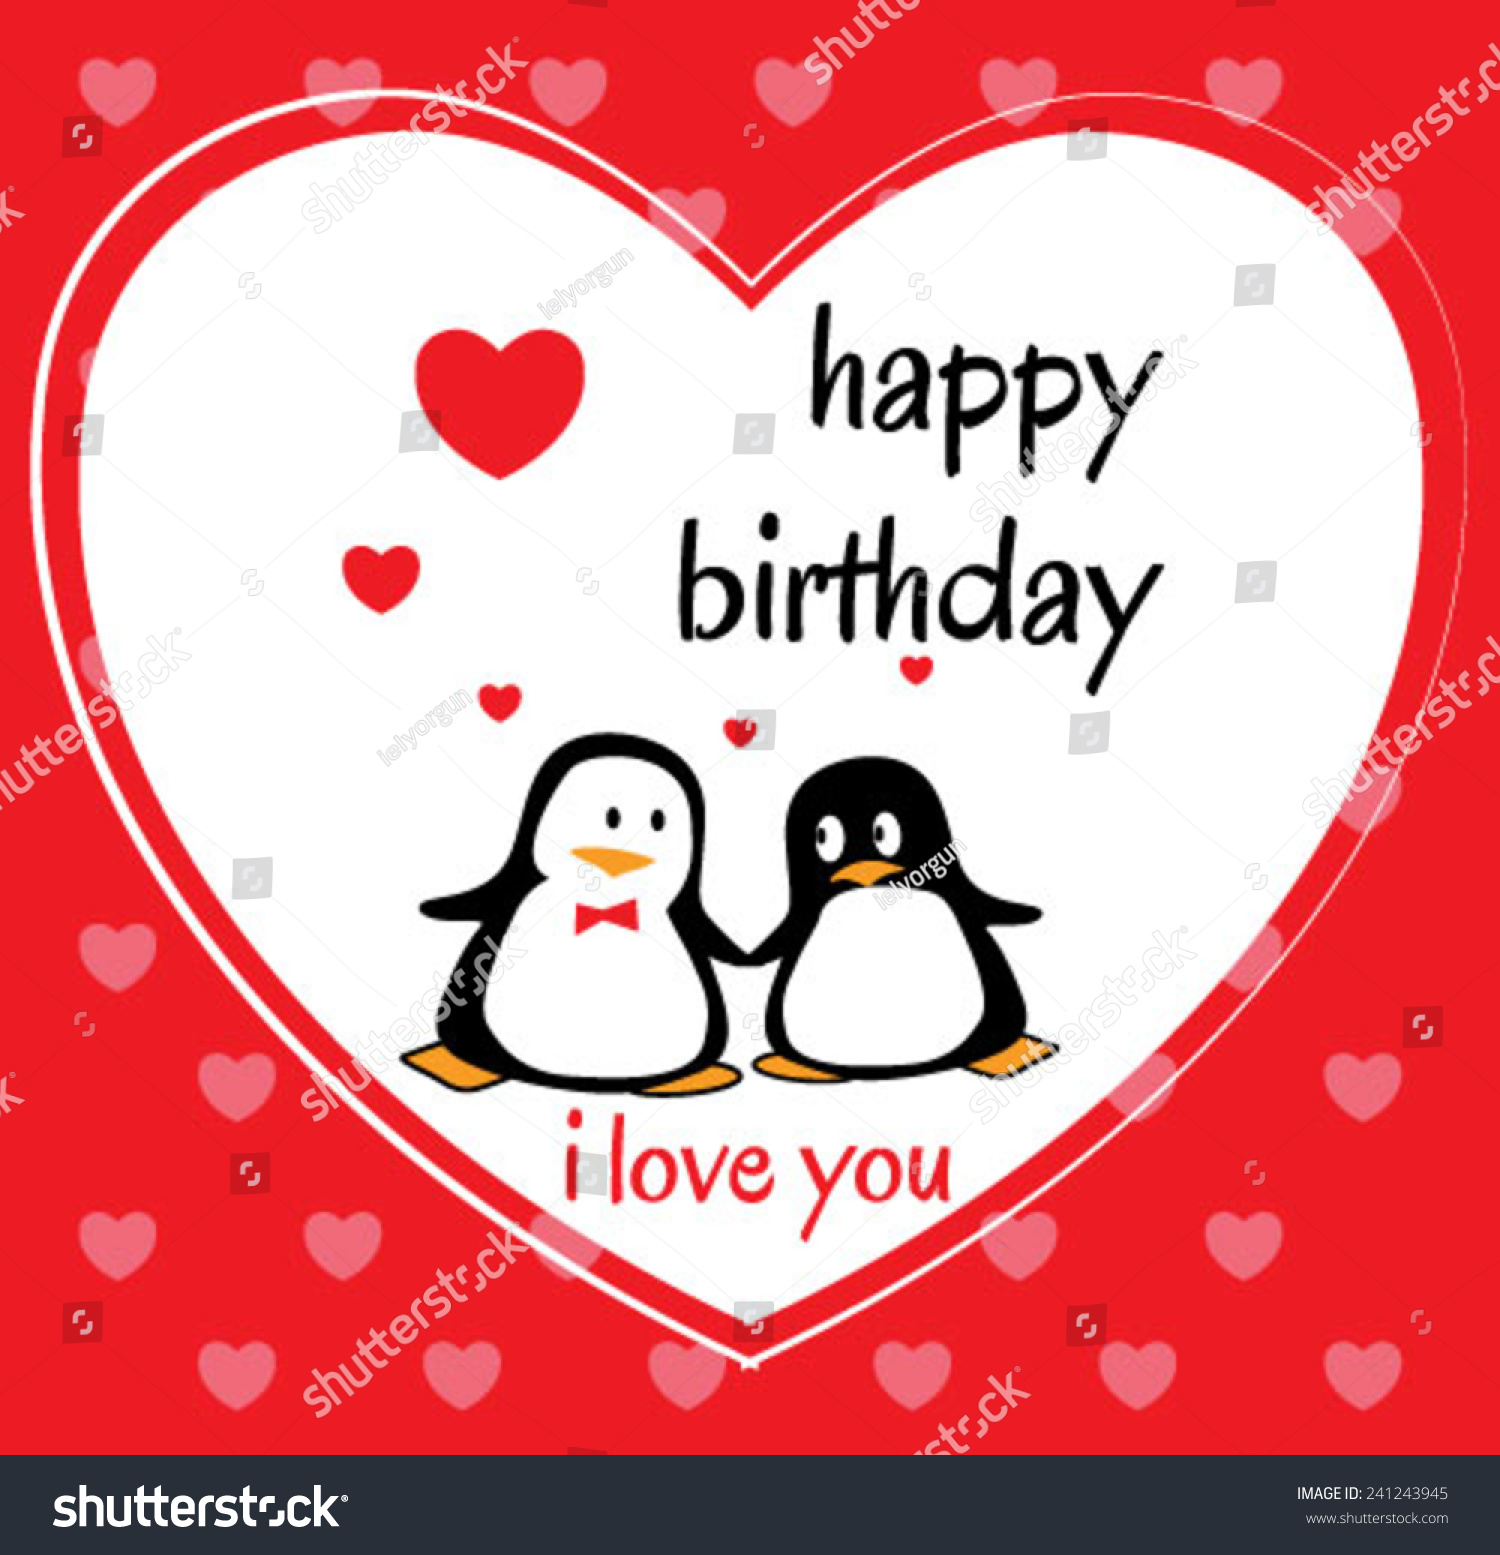 penguin birthday cards stock vector   shutterstock, Birthday card